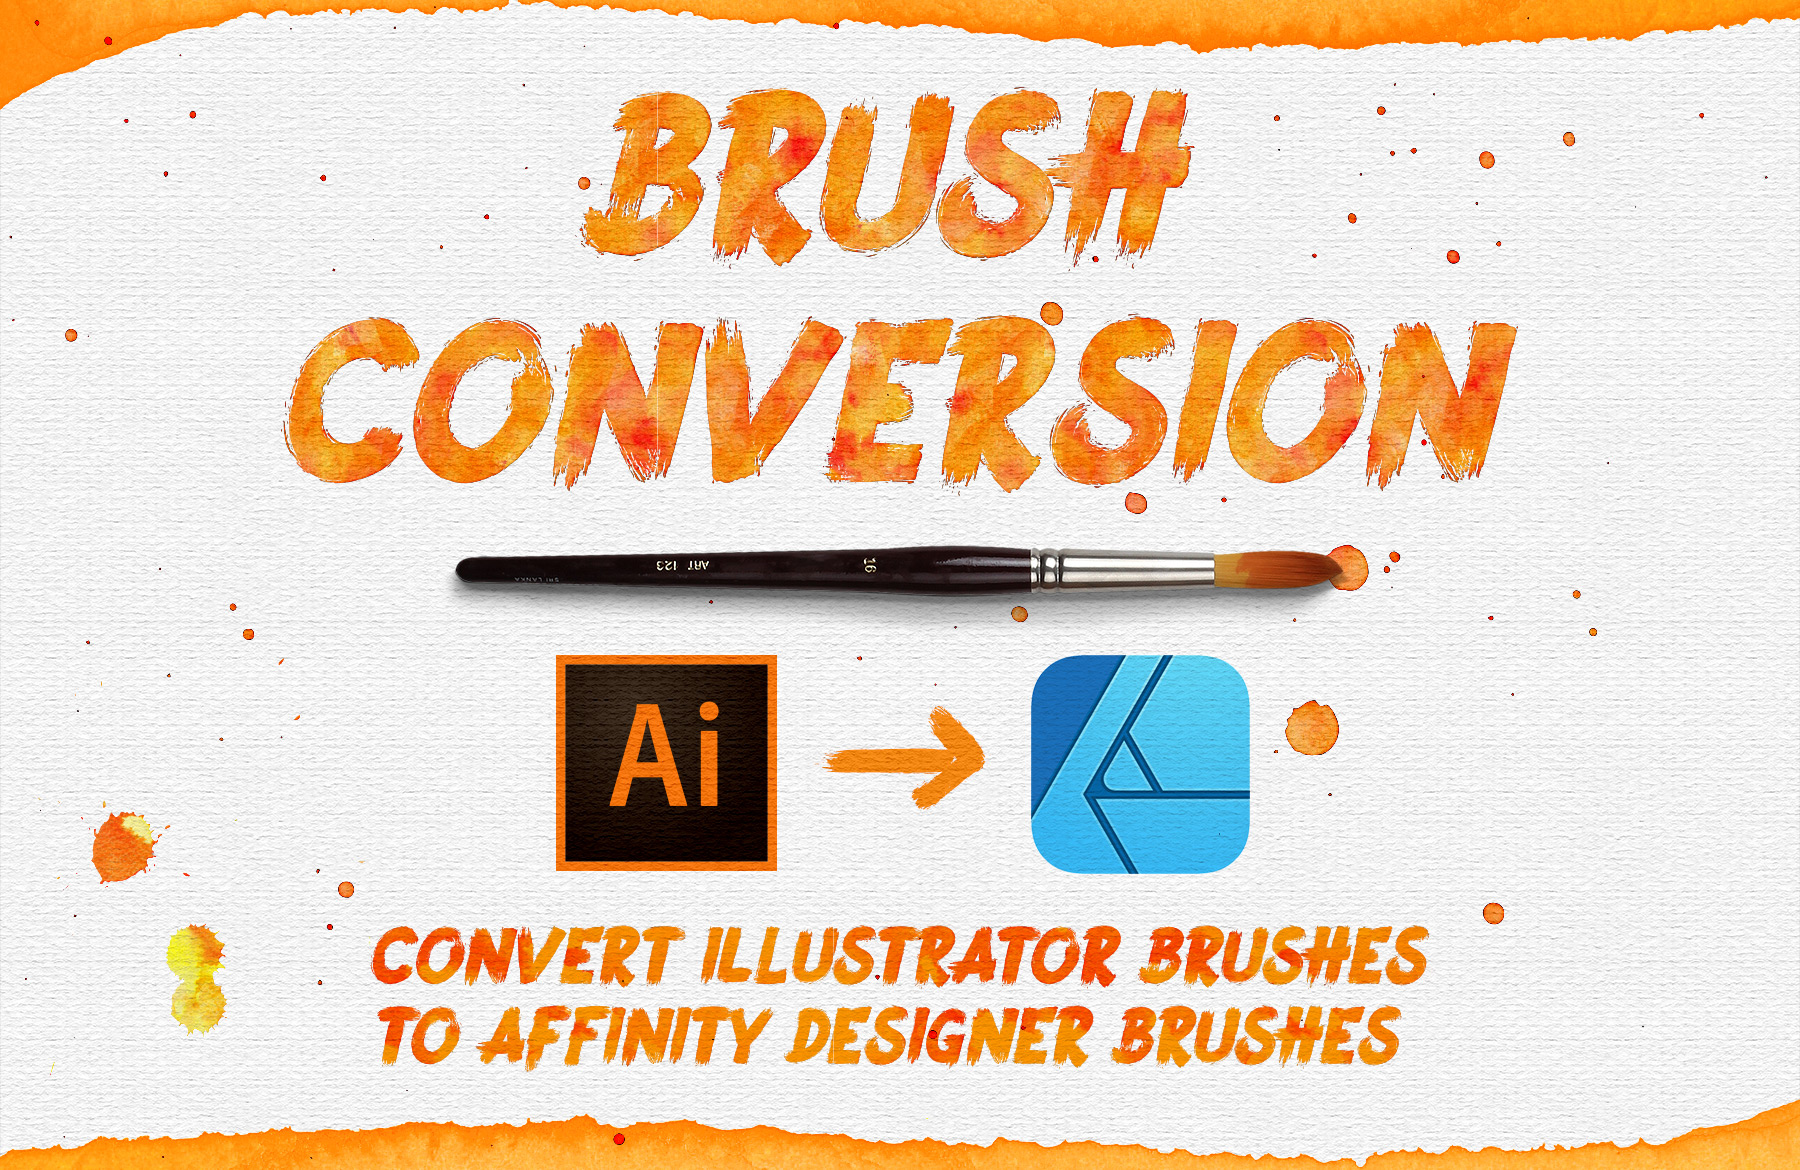 https://www.designcuts.com/wp-content/uploads/2020/01/brush-conversion-AI.jpg